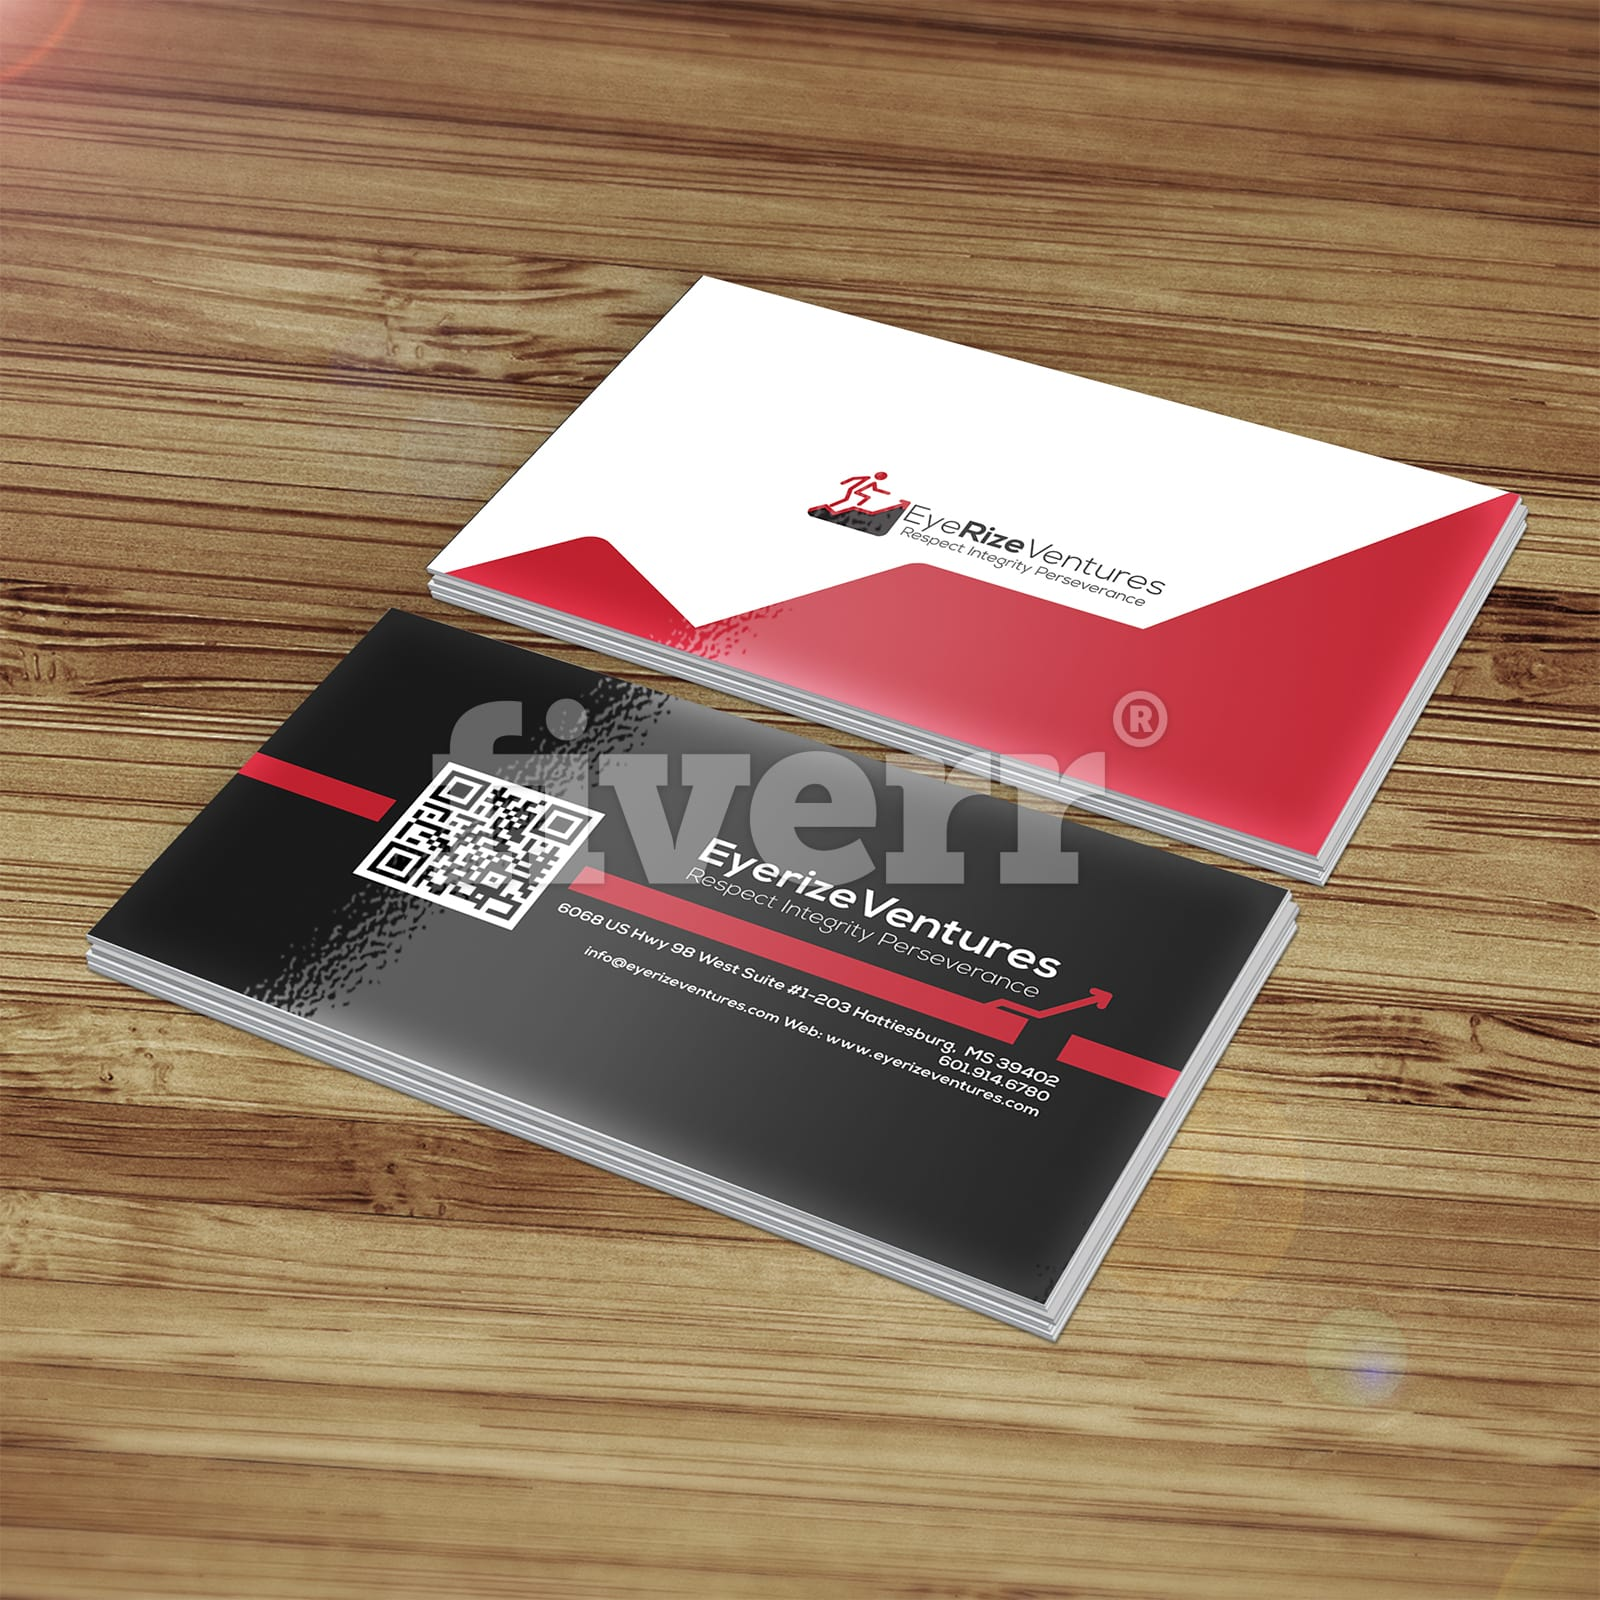 Unique and professional dual sided business cards